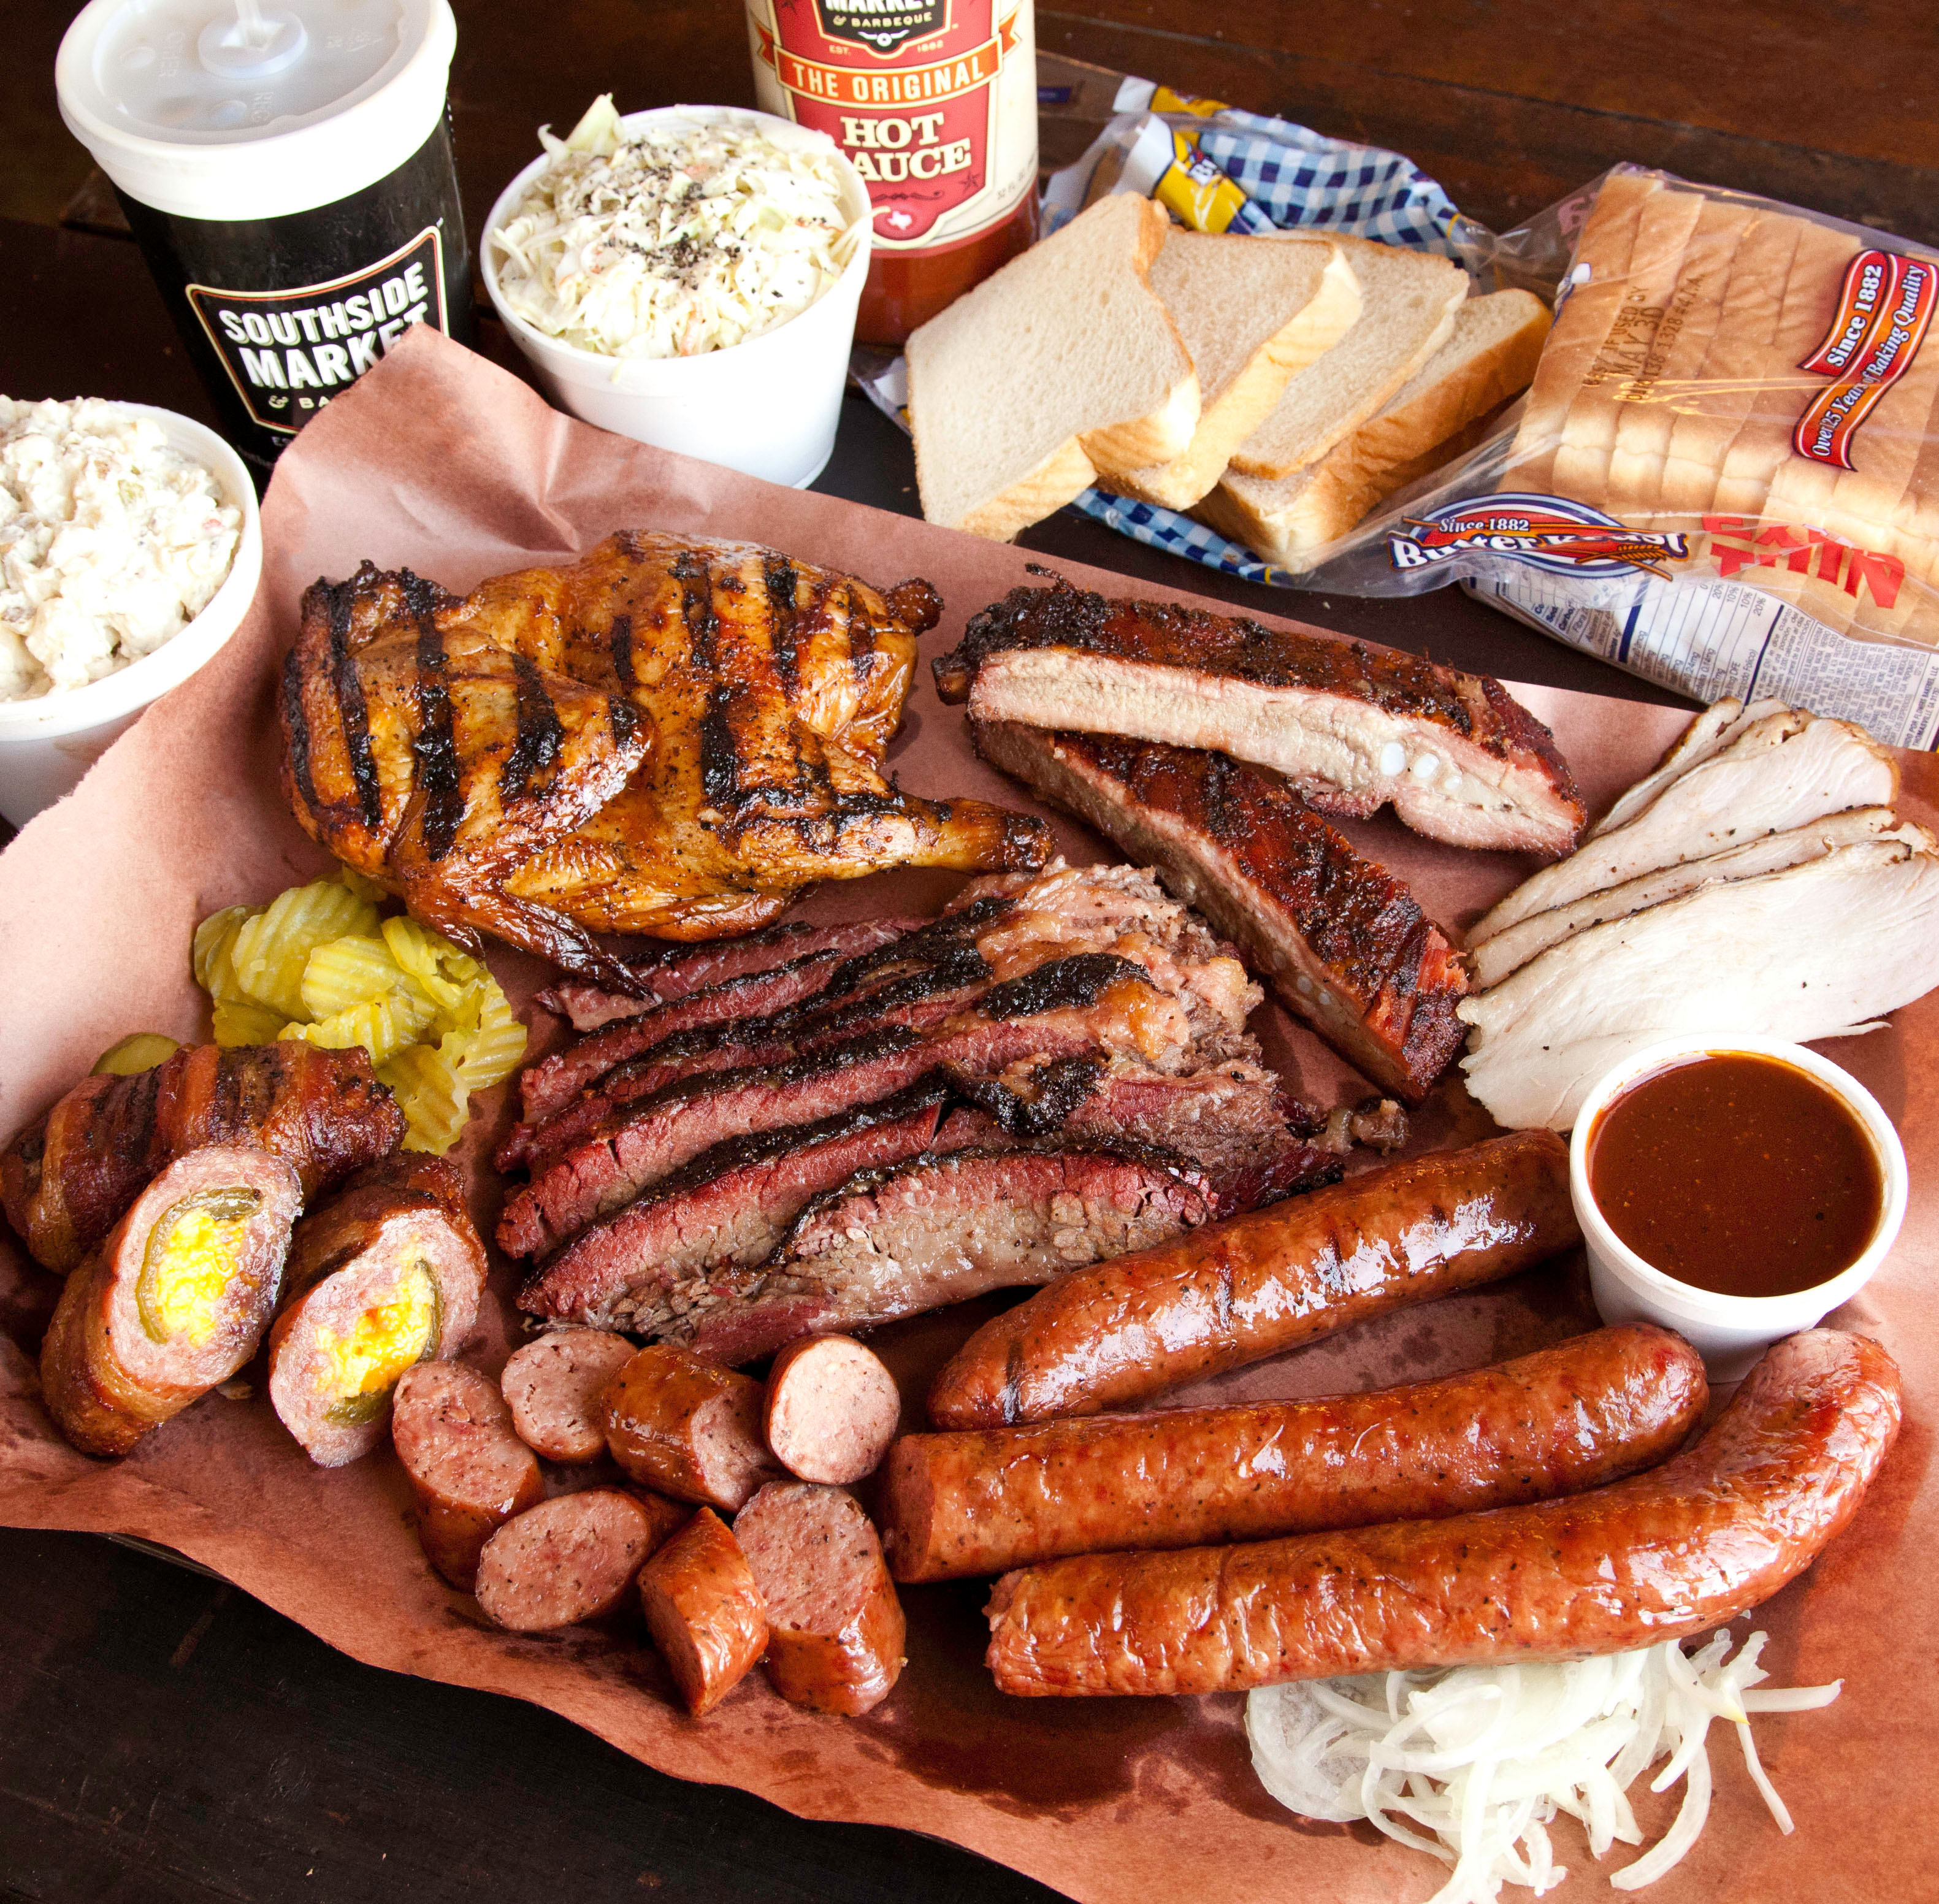 A barbecue platter from Southside Market